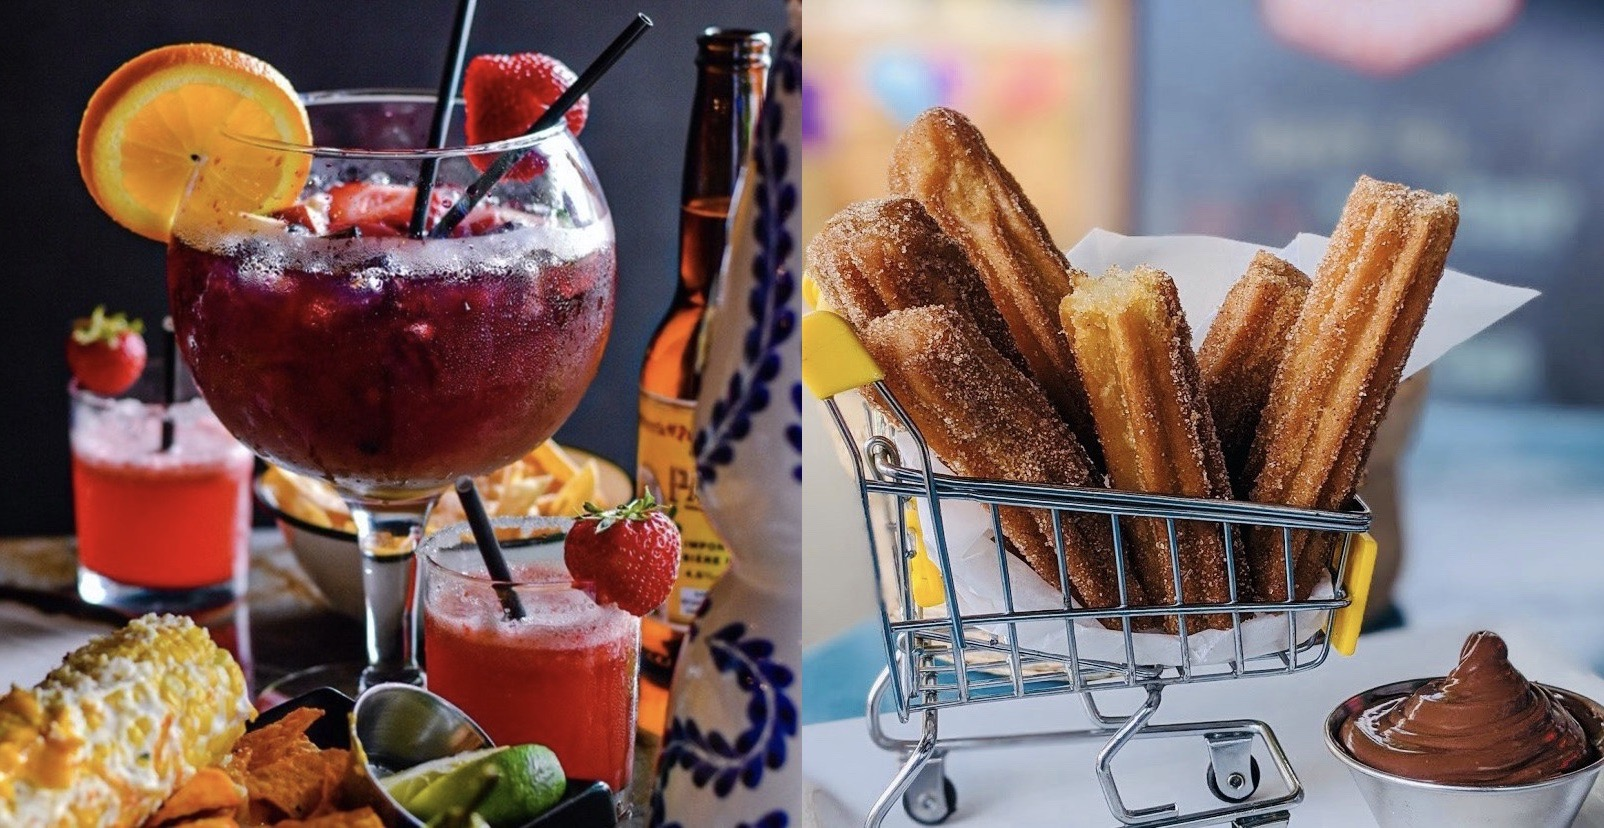 Tequila Cocina Vancouver is opening on October 2